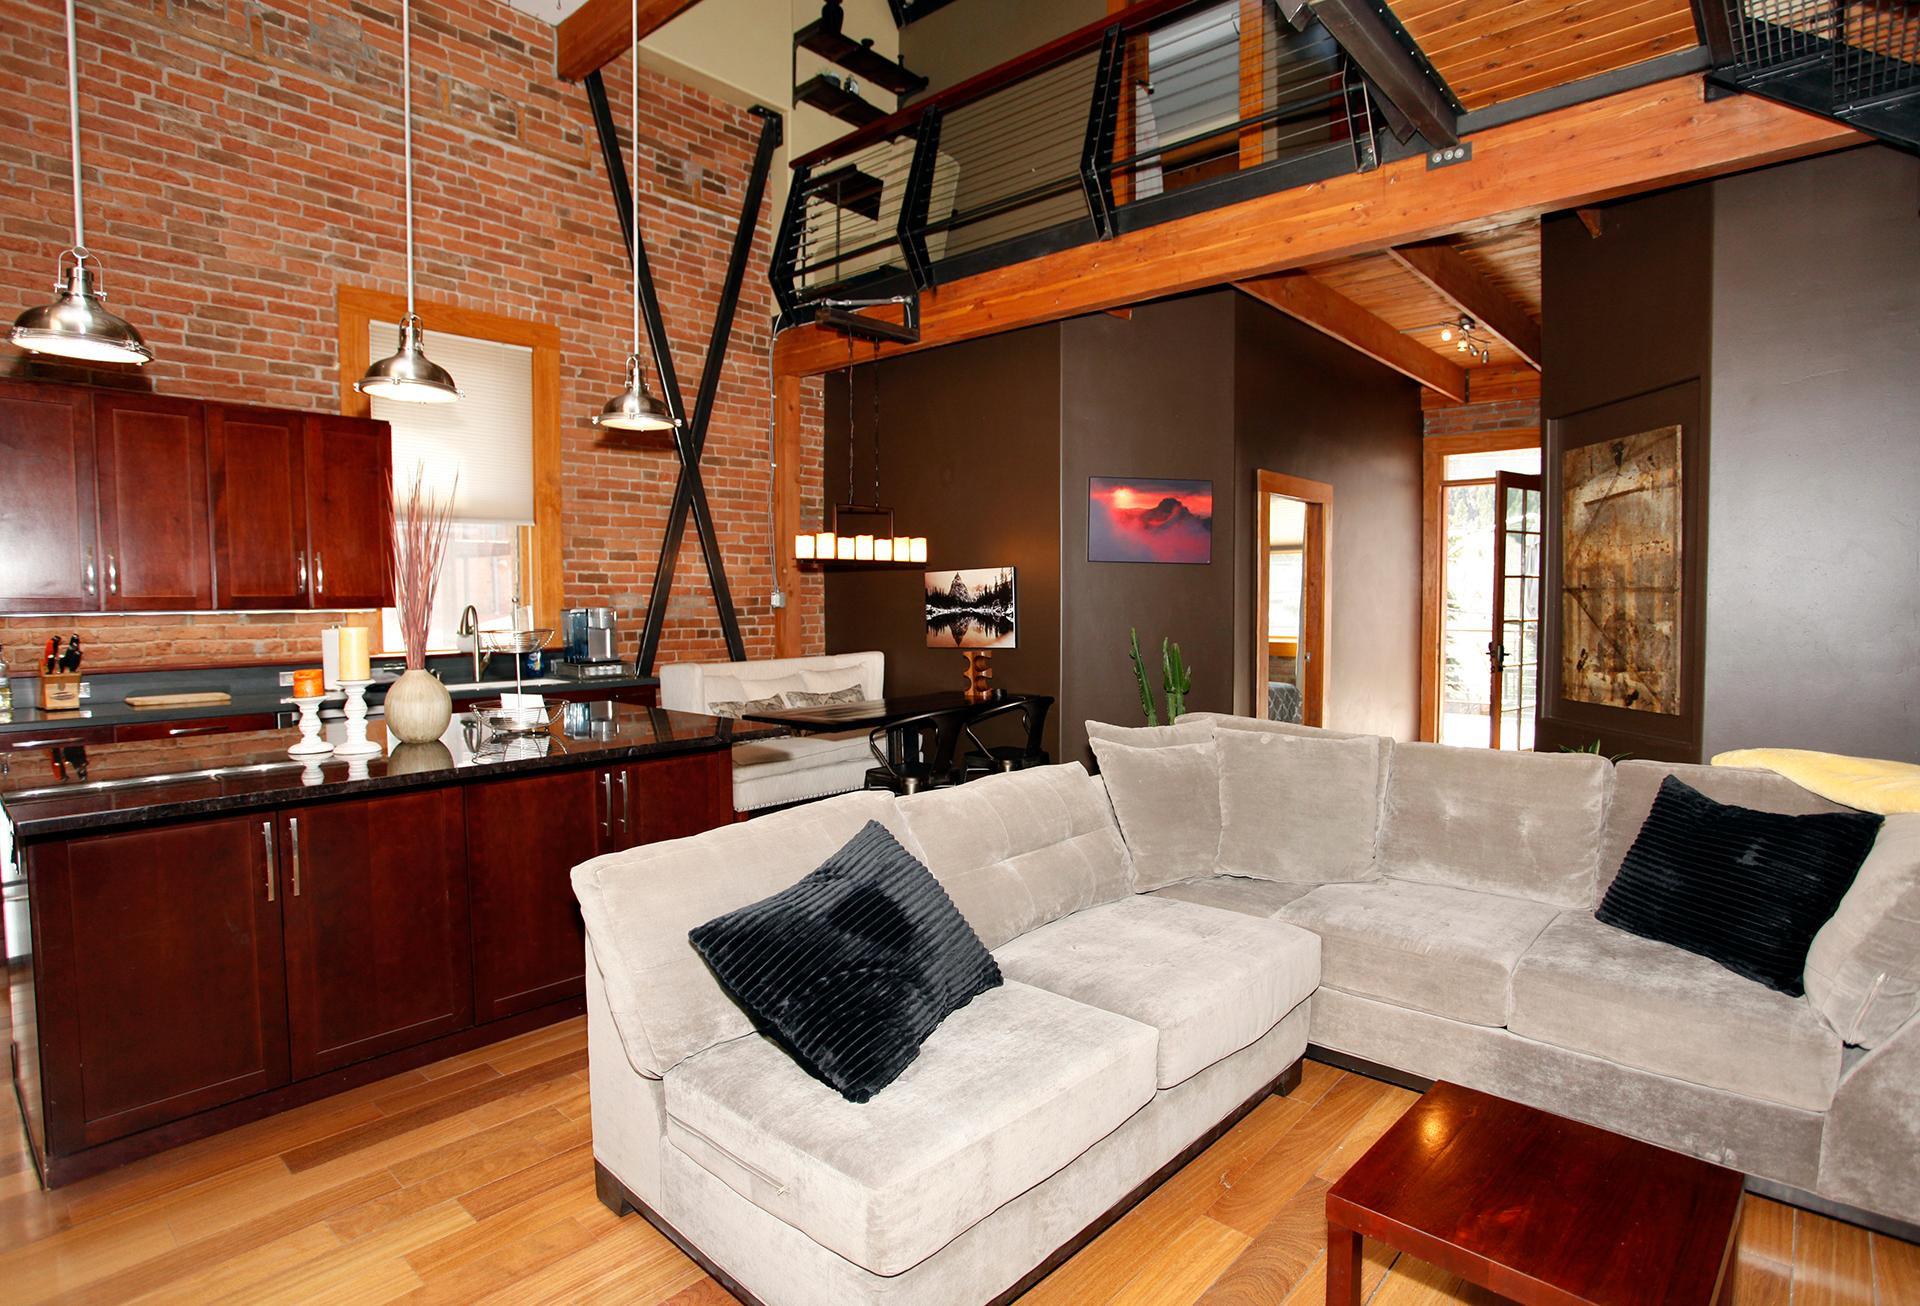 Property Image 2 - Modern Luxury Loft Unbeatable Location in the Heart of Downtown Ouray